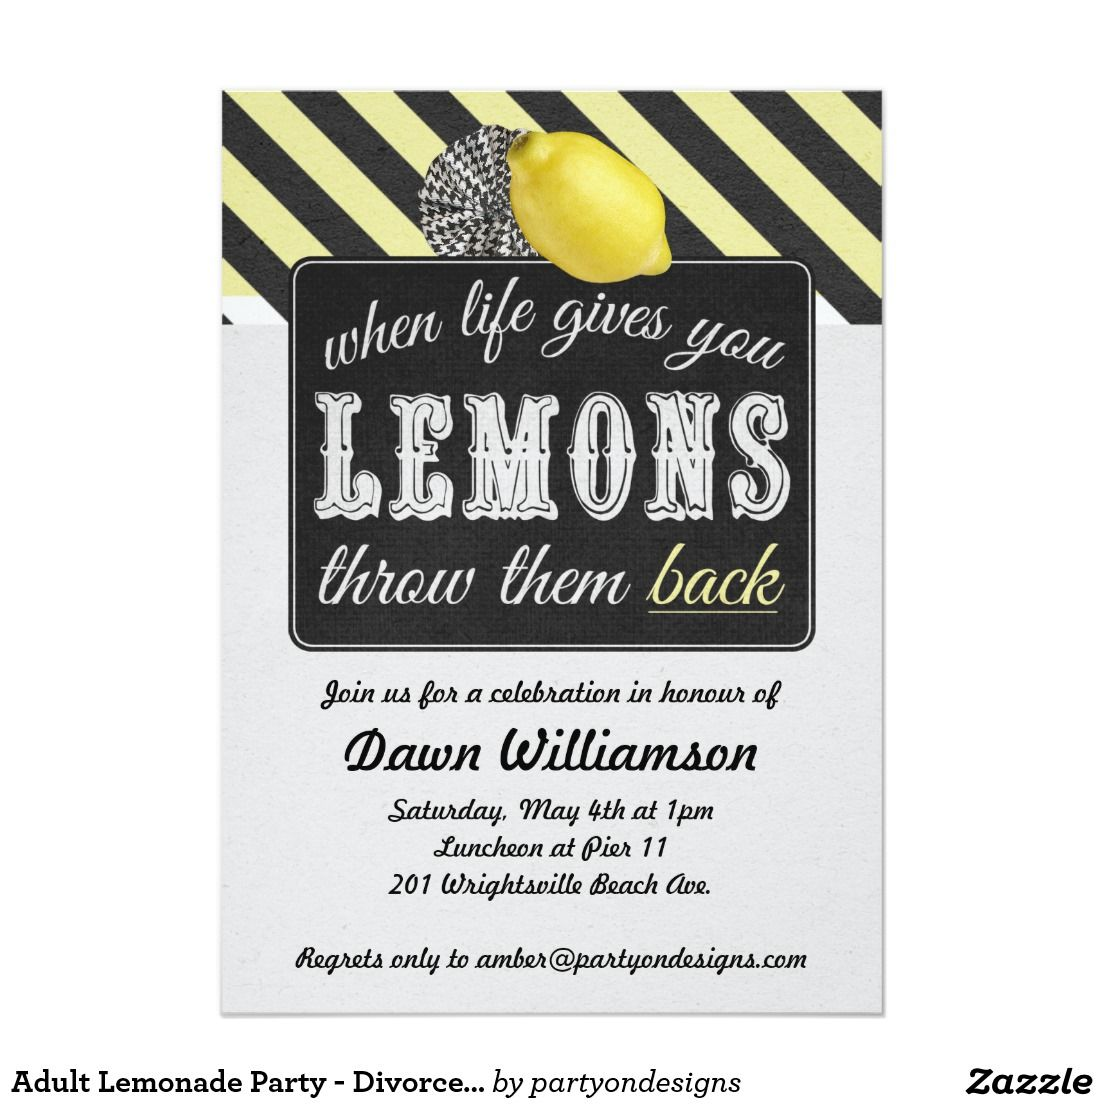 Adult Lemonade Party - Divorce Party Girls Night Invitations ...